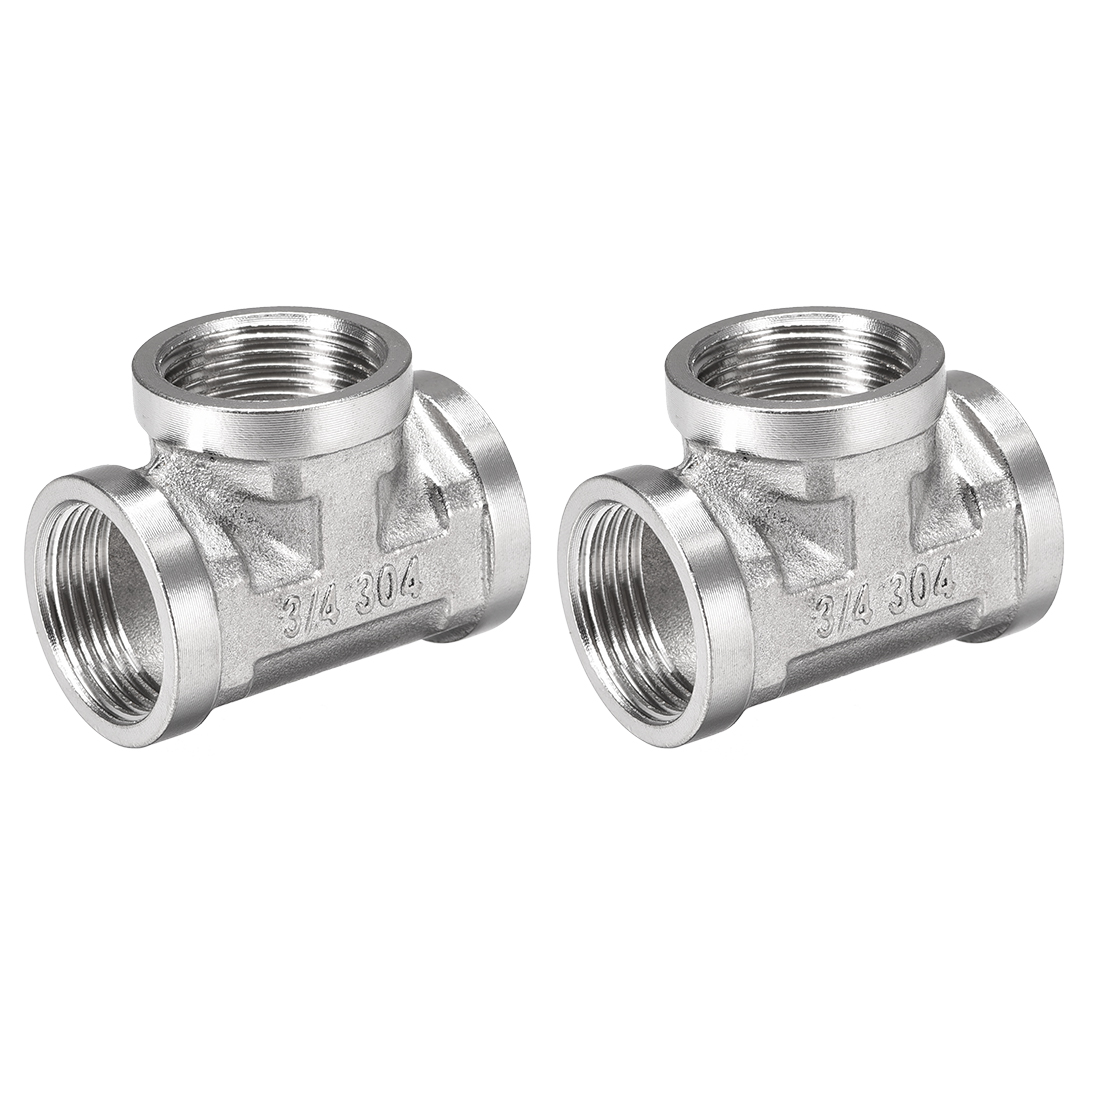 Stainless Steel 304 Cast Pipe Fitting G3/4 Female Tee Shaped Connector 2pcs